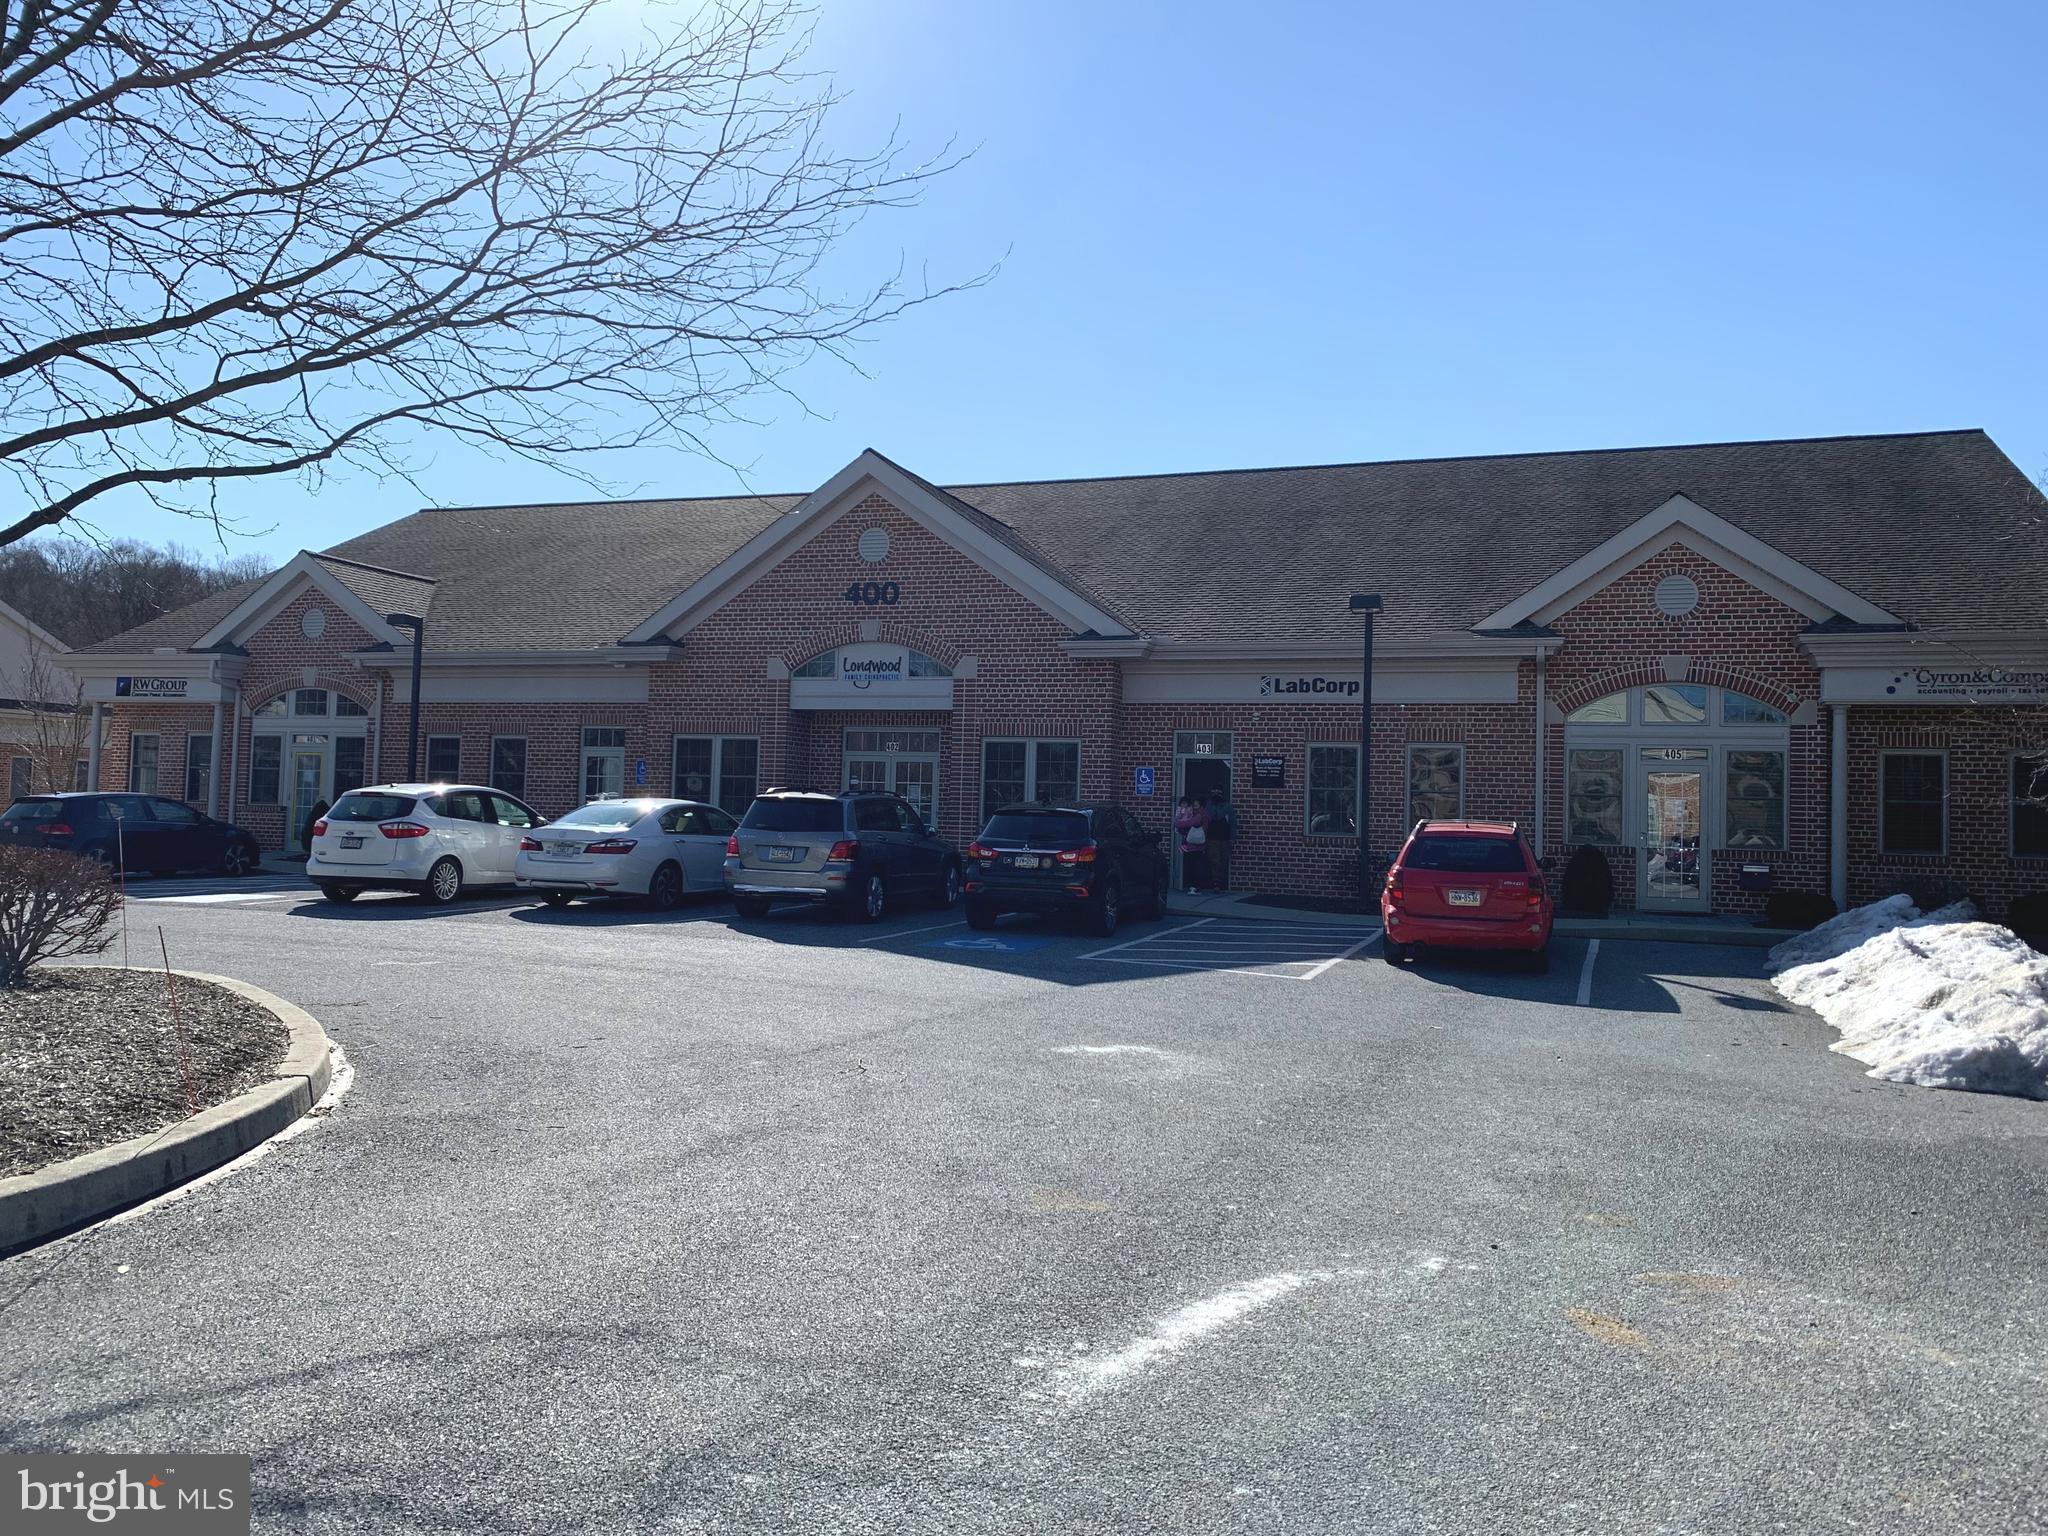 Newly available office suite in the Beiler-Campbell Business Center, seated along the US1 corridor in the Longwood area of Kennett Square and boasting traffic counts of 40k+  This 987 sf is ready for your fit-out options. Currently an open suite with one restroom and corner executive office. Bring your floor plan and design plans and join Tower Health, WSFS Bank, Truist Bank, Verizon Wireless, and many local small businesses in this thriving Business Center. 7/1000 parking ratio. Easy access from US-1 and Bayard Rd.